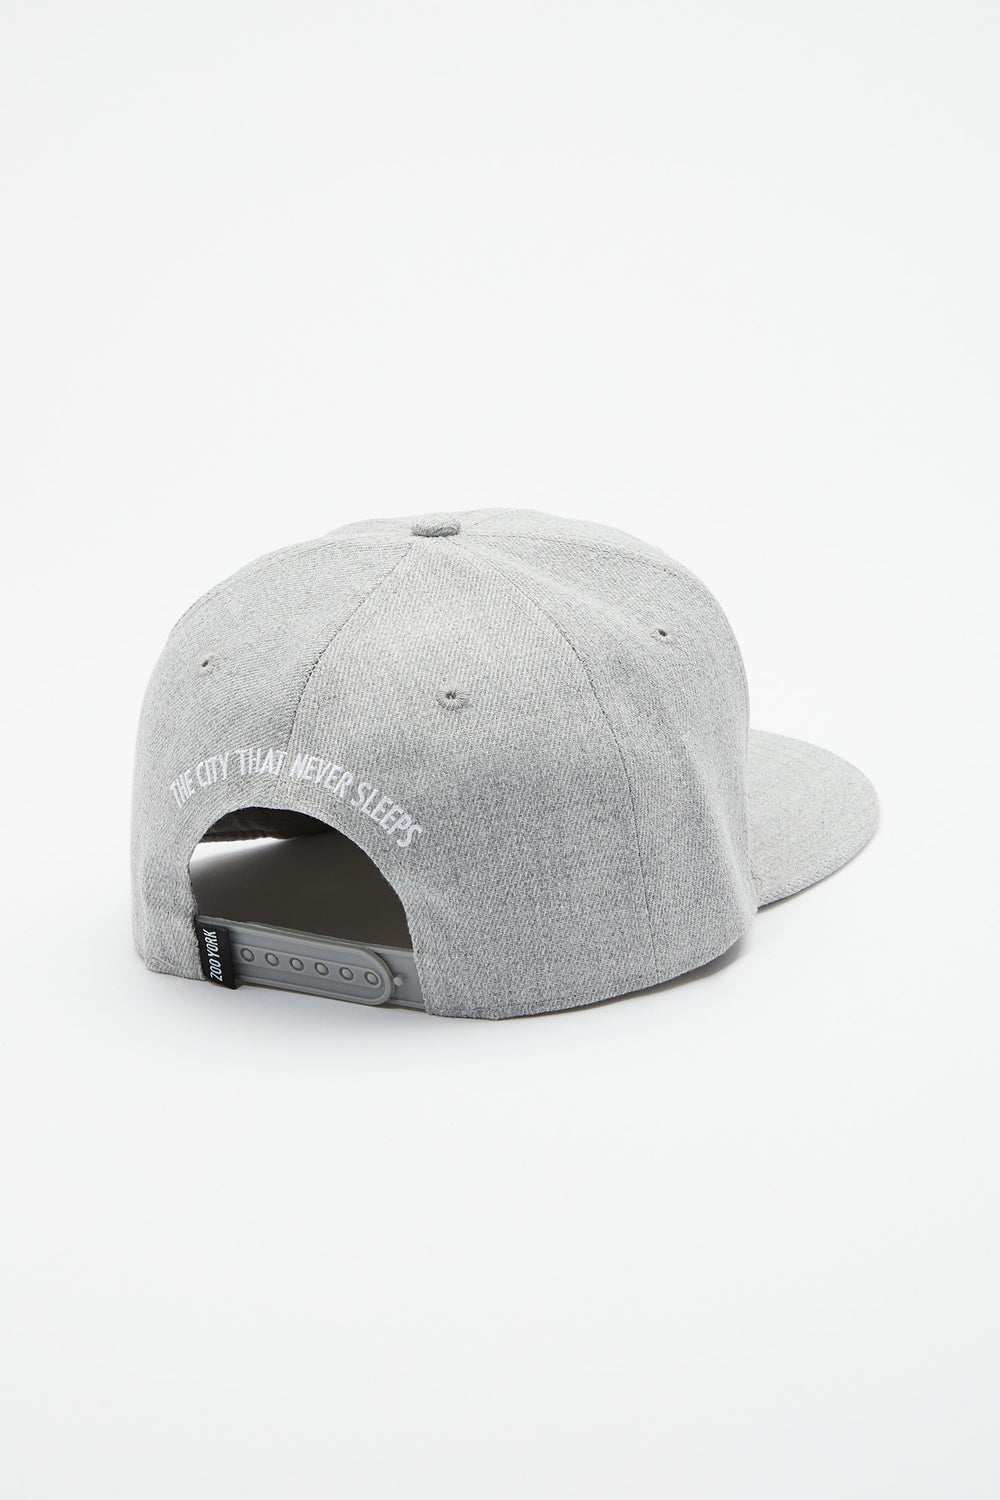 Casquette Cartiers NYC Zoo York Homme Gris